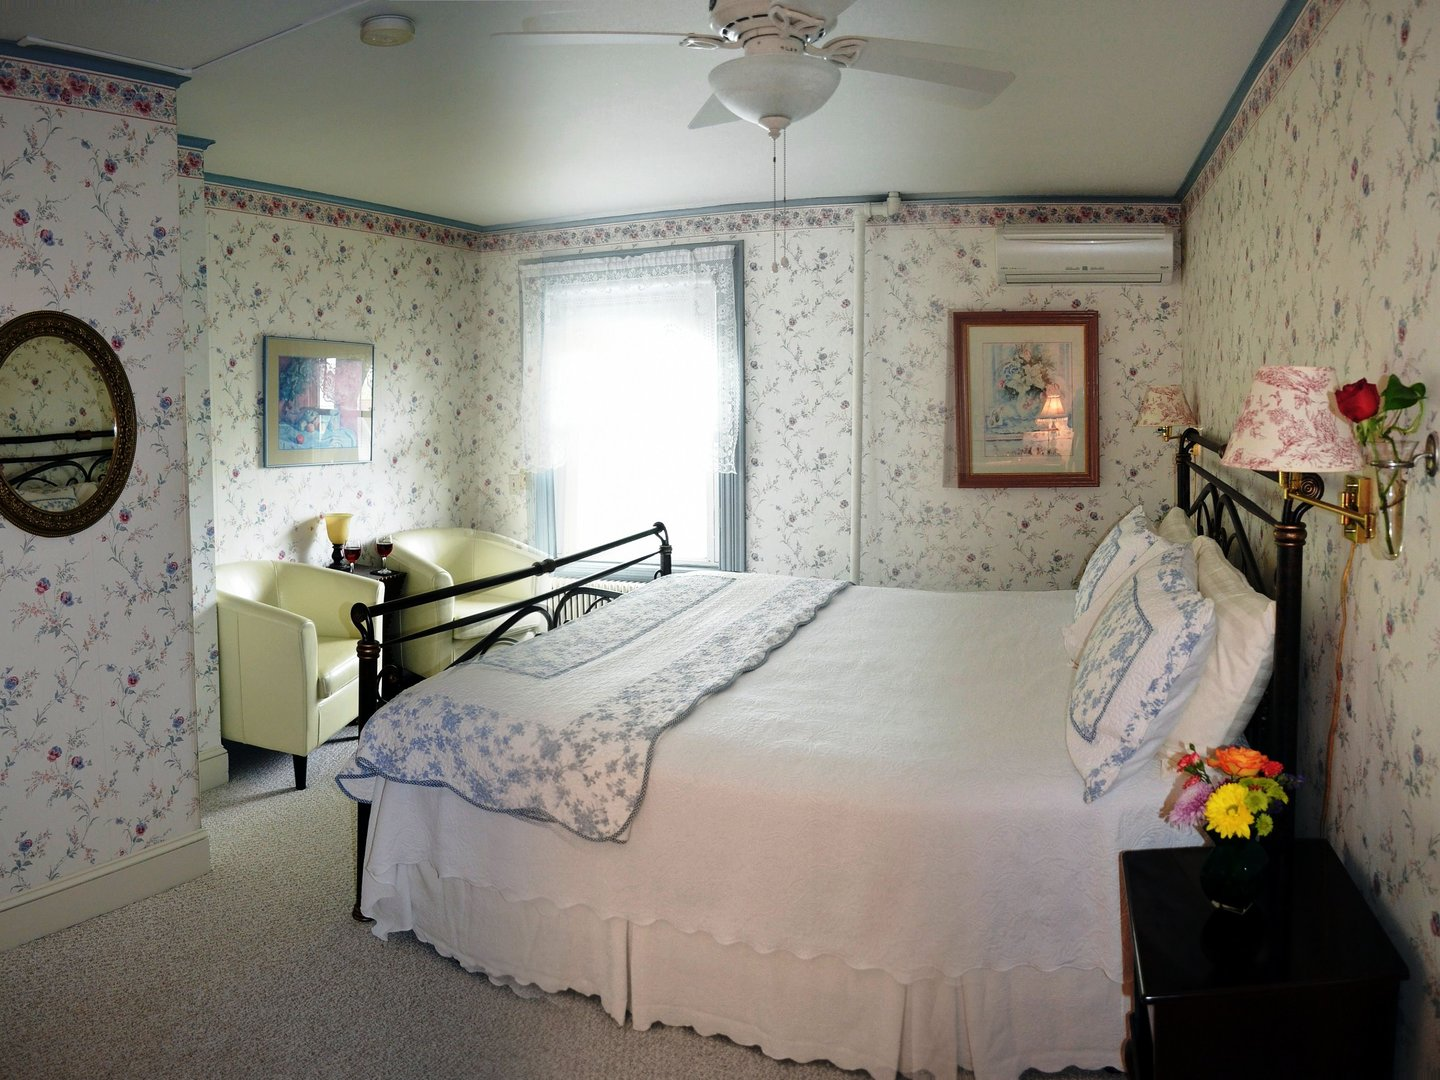 Southwest Harbor Bed and Breakfast